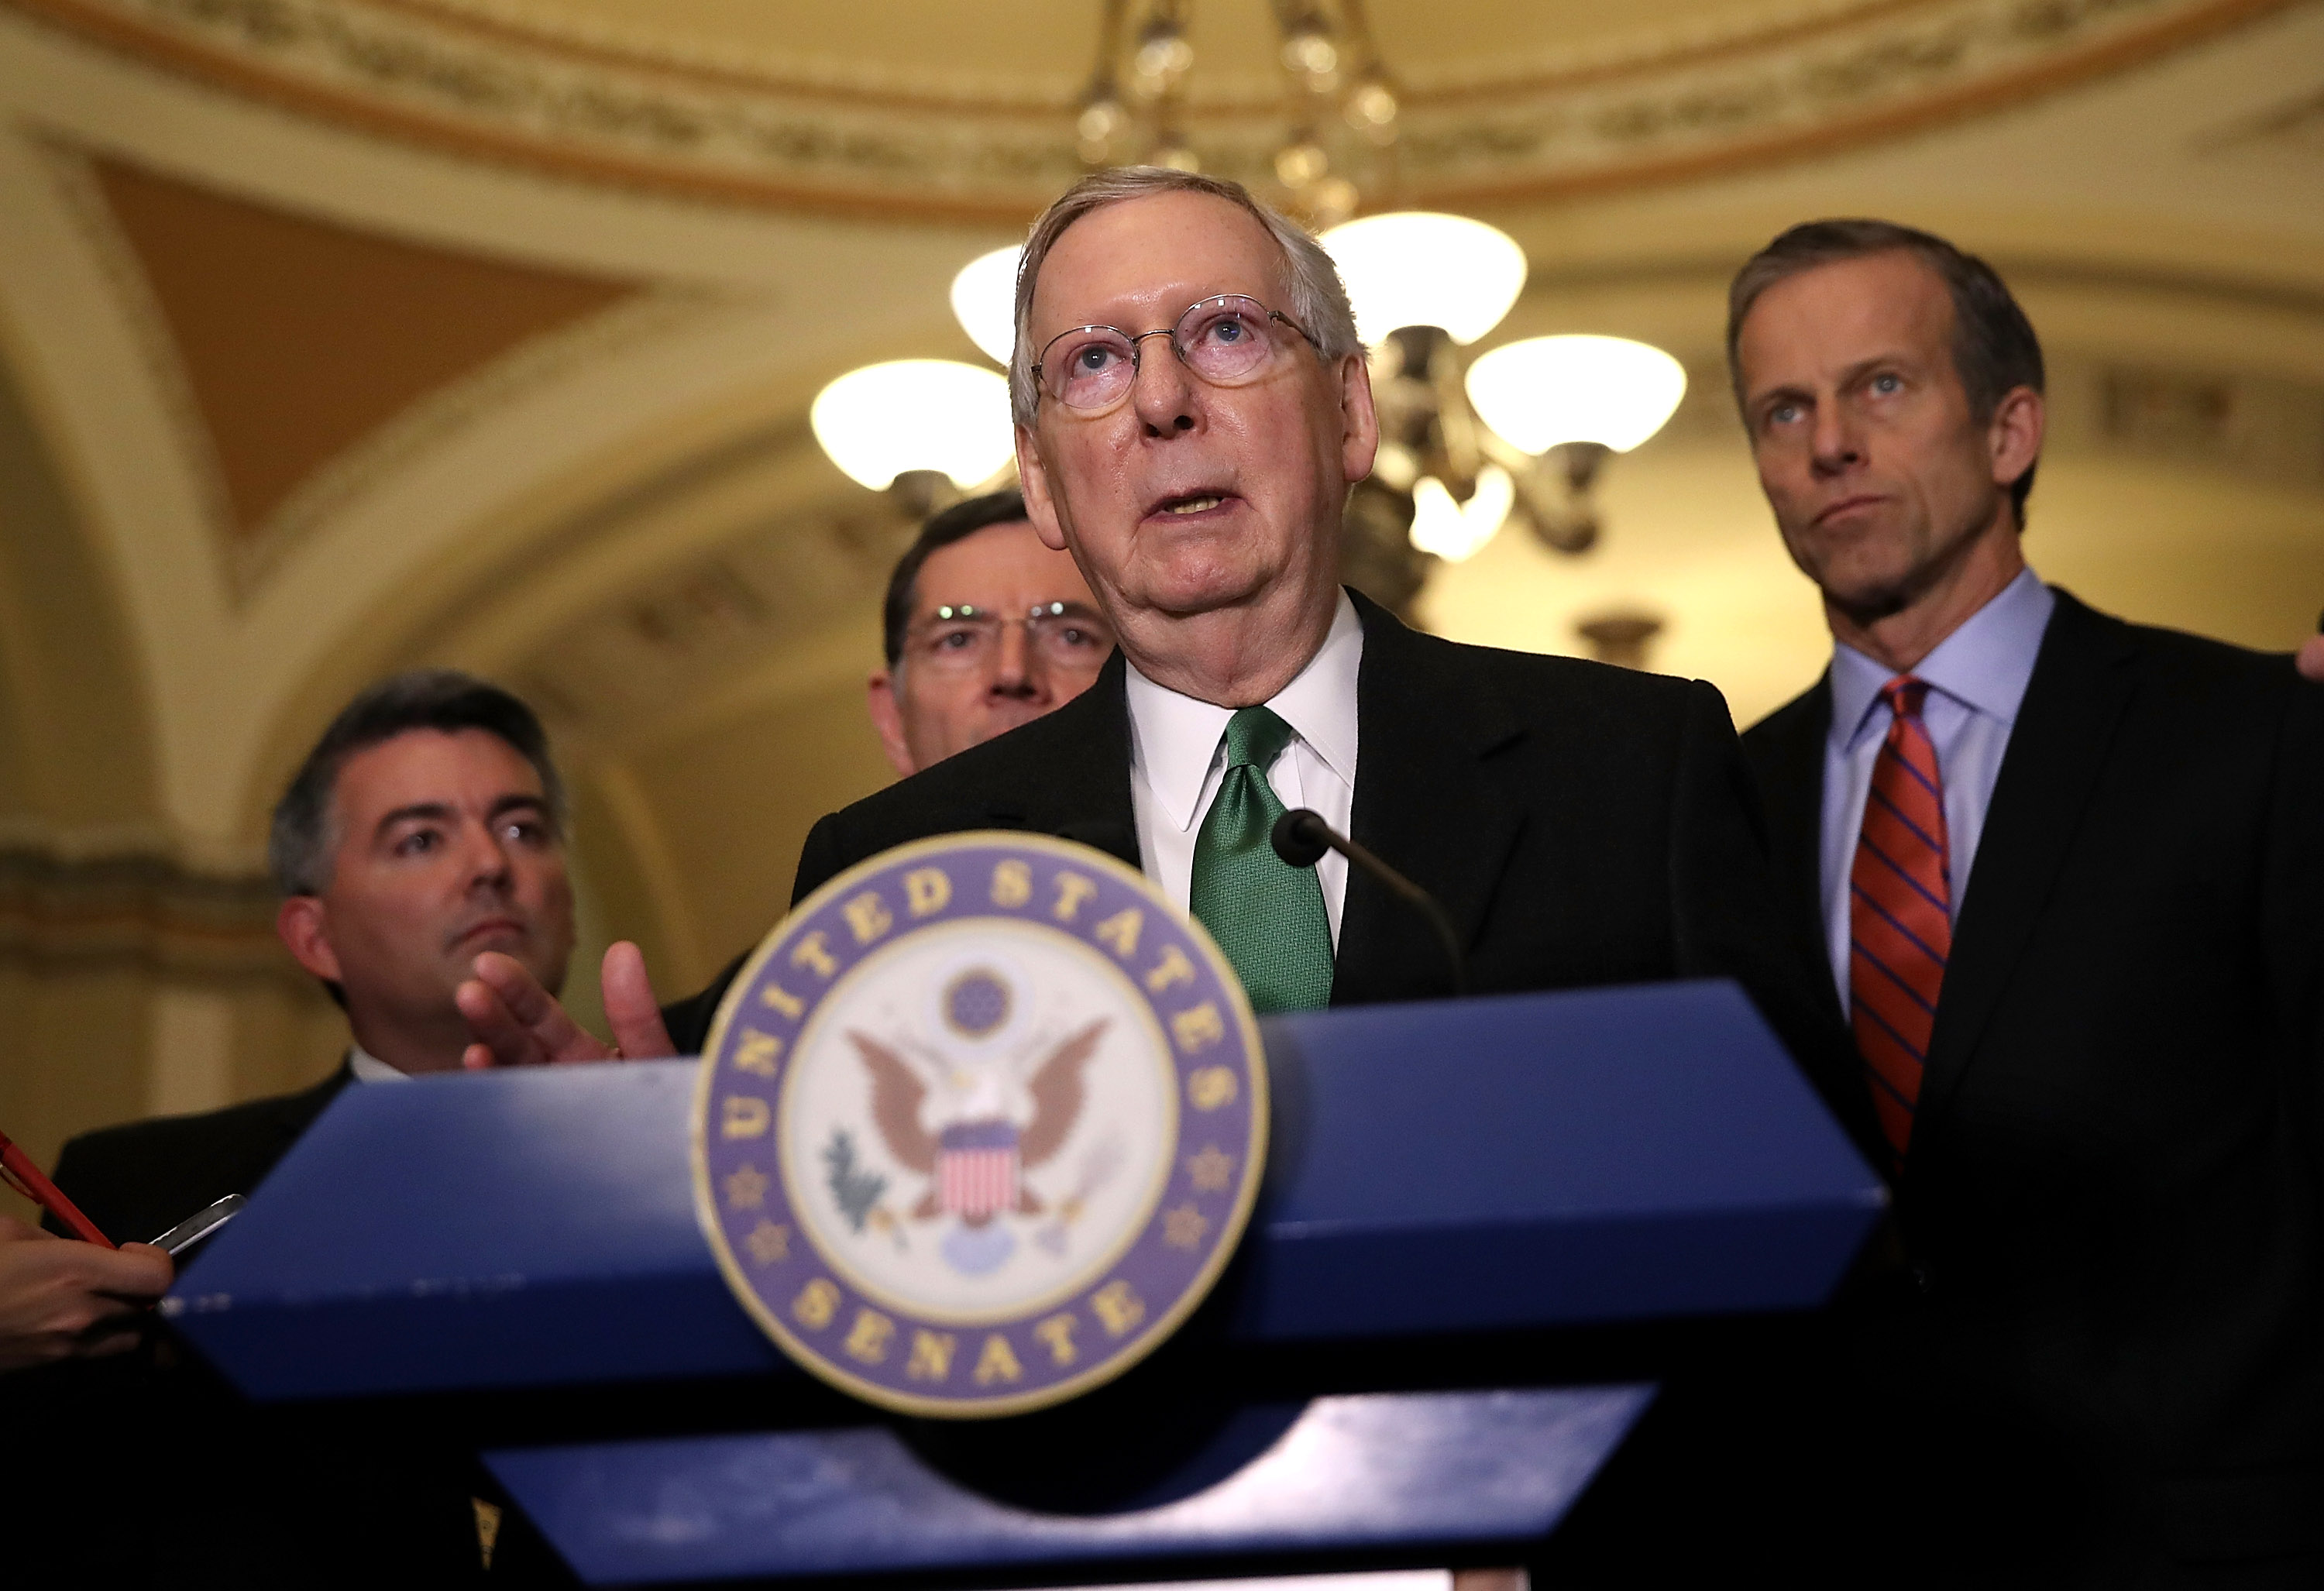 Senate Majority Leader Mitch McConnell (R-KY) speaks to reporters during a news conference on Capitol Hill following a policy lunch on March 7, 2017 in Washington, DC.